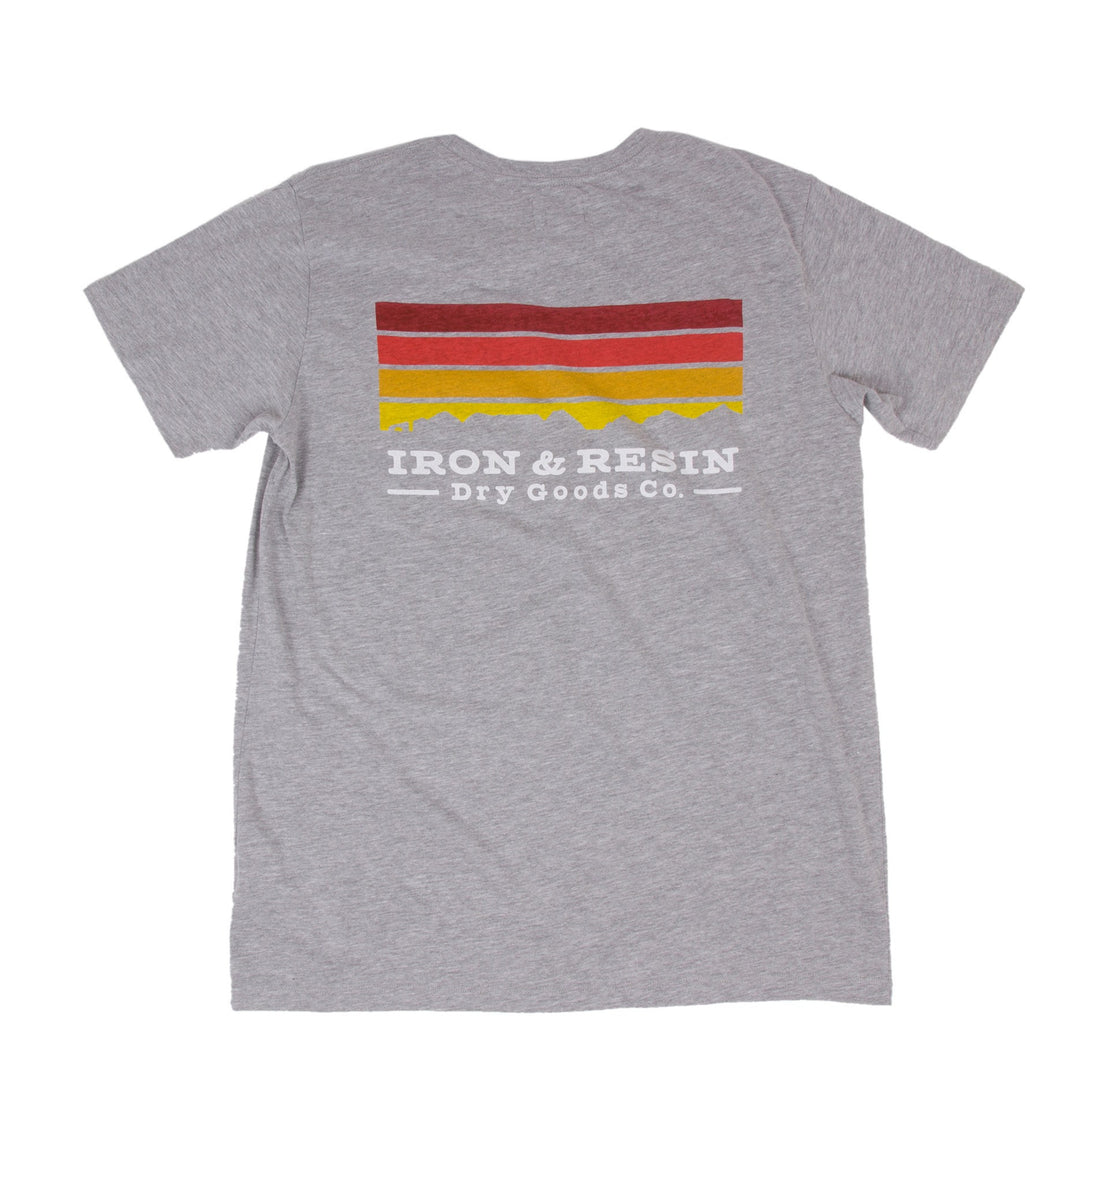 Horizon Tee - Apparel: Men's: Graphic T-Shirts - Iron and Resin